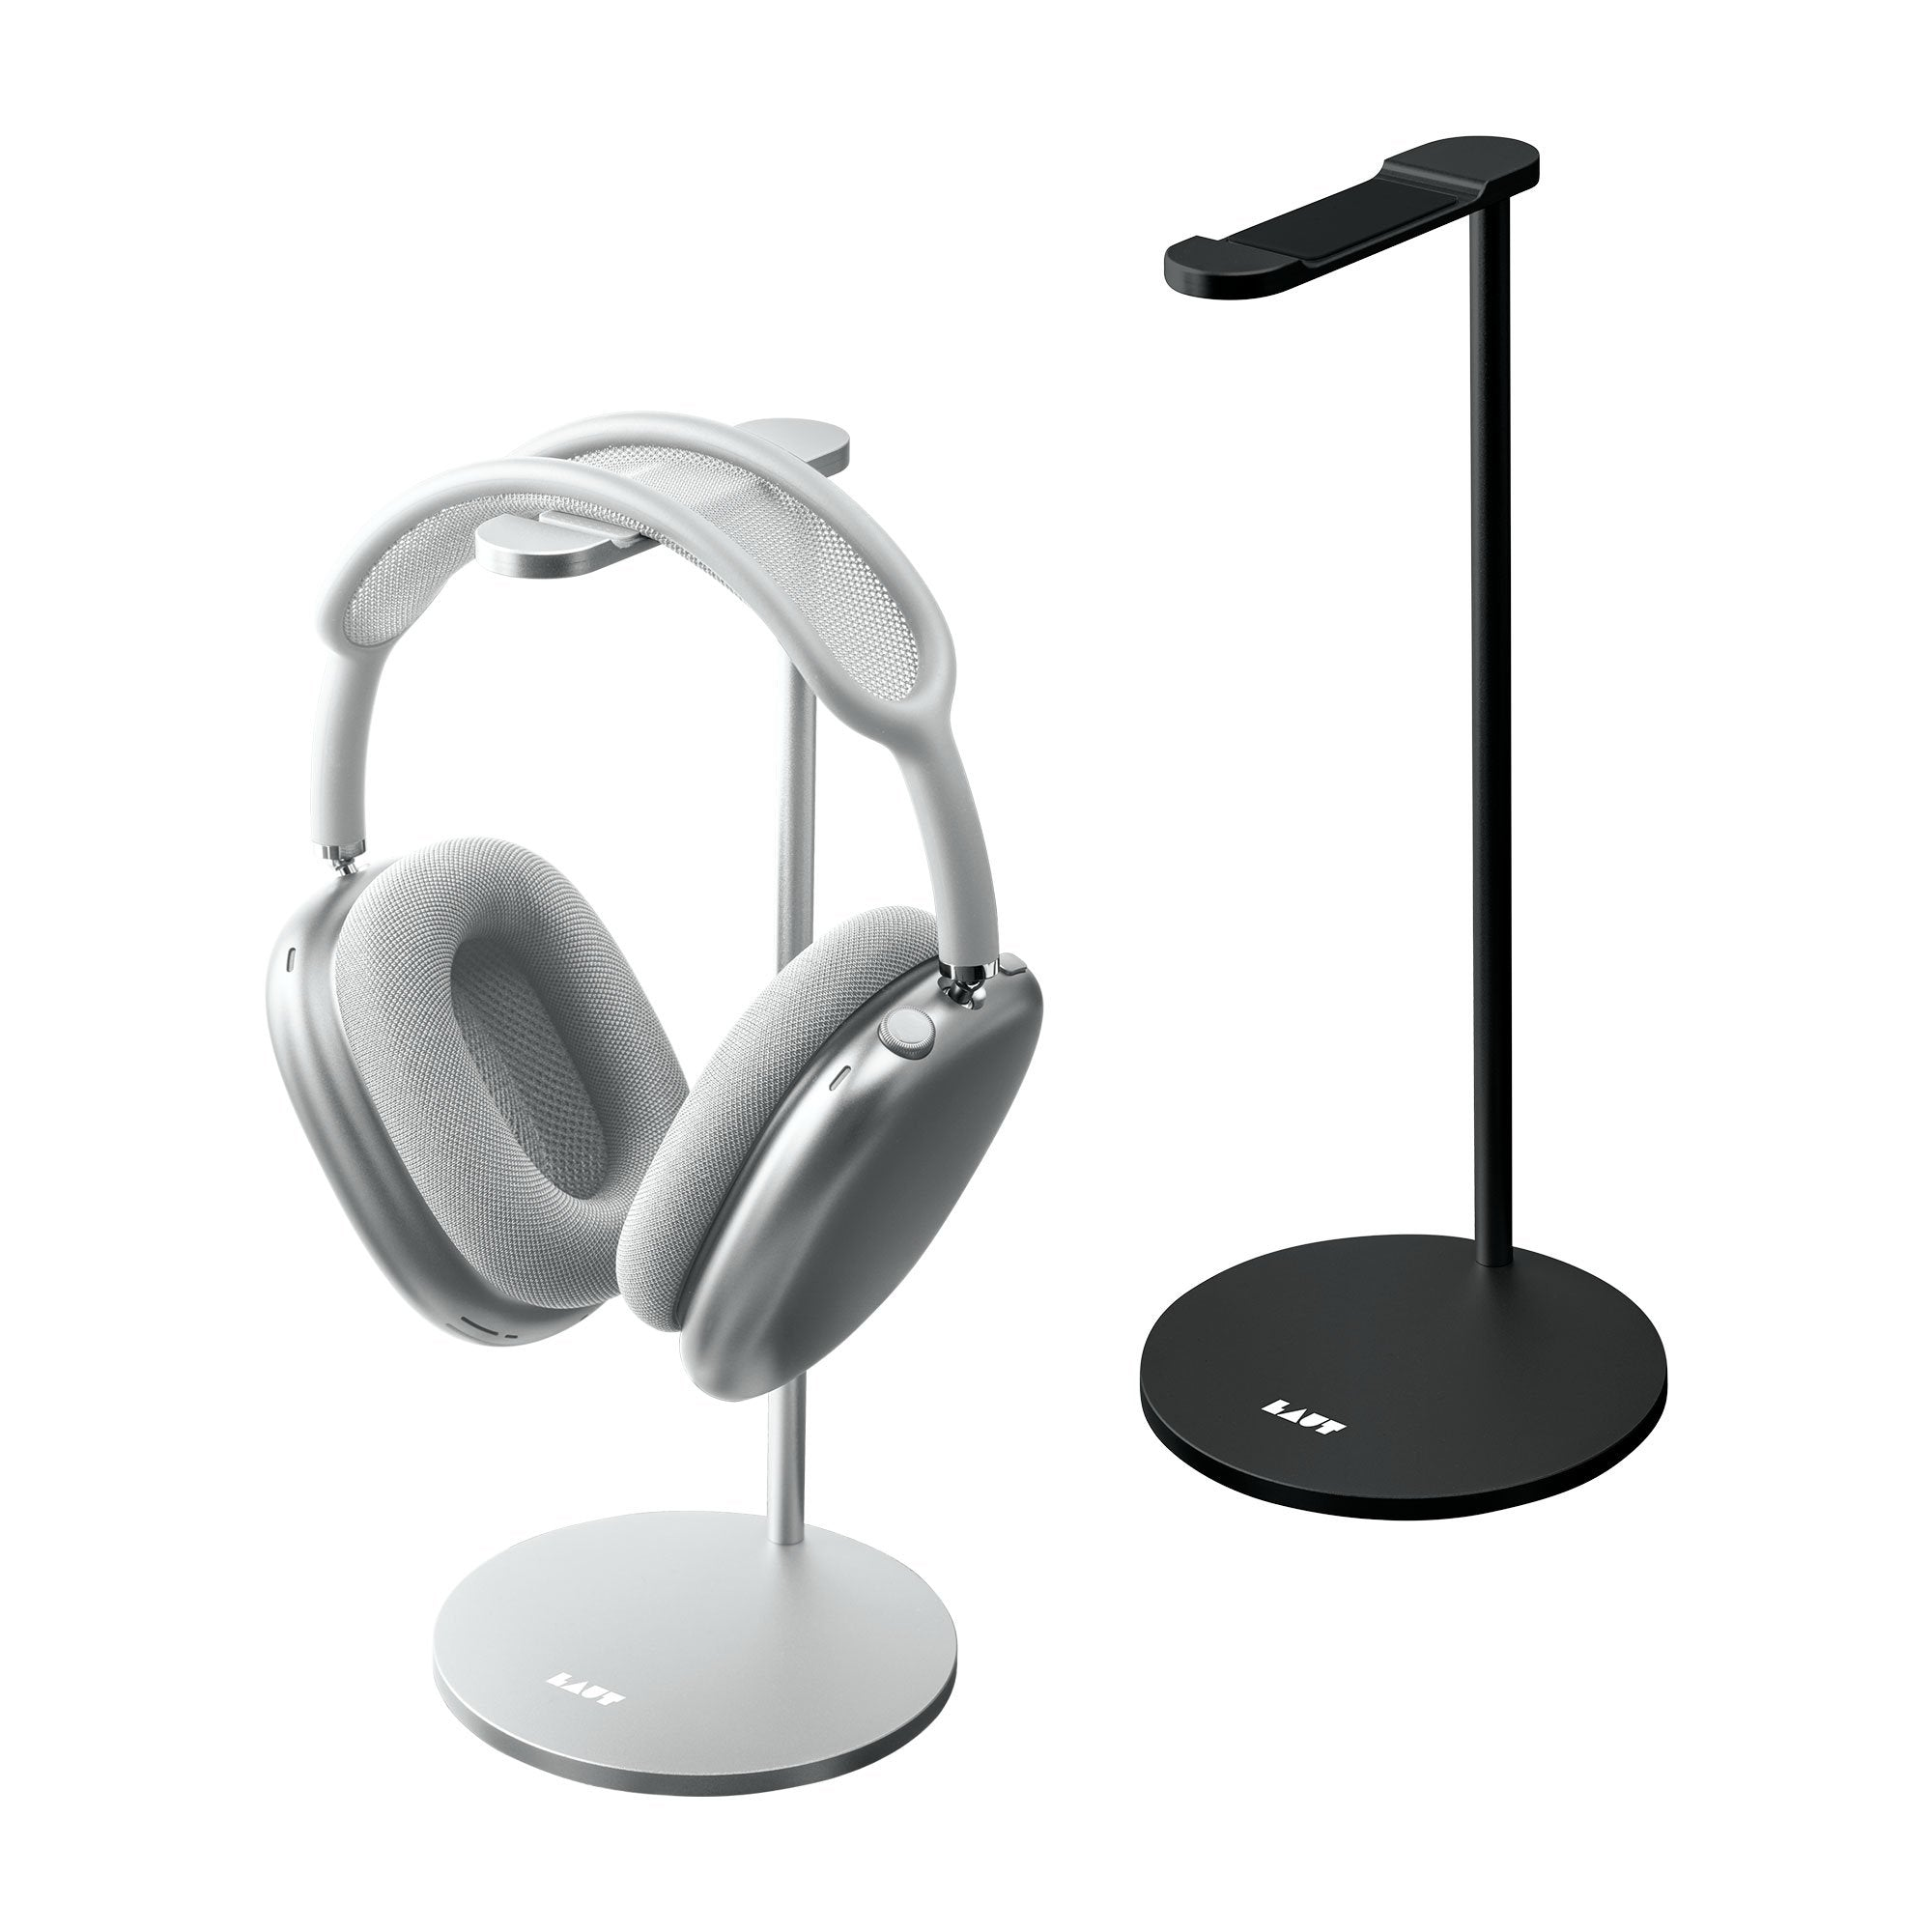 Free Stand - Headphone Stand for AirPods Max